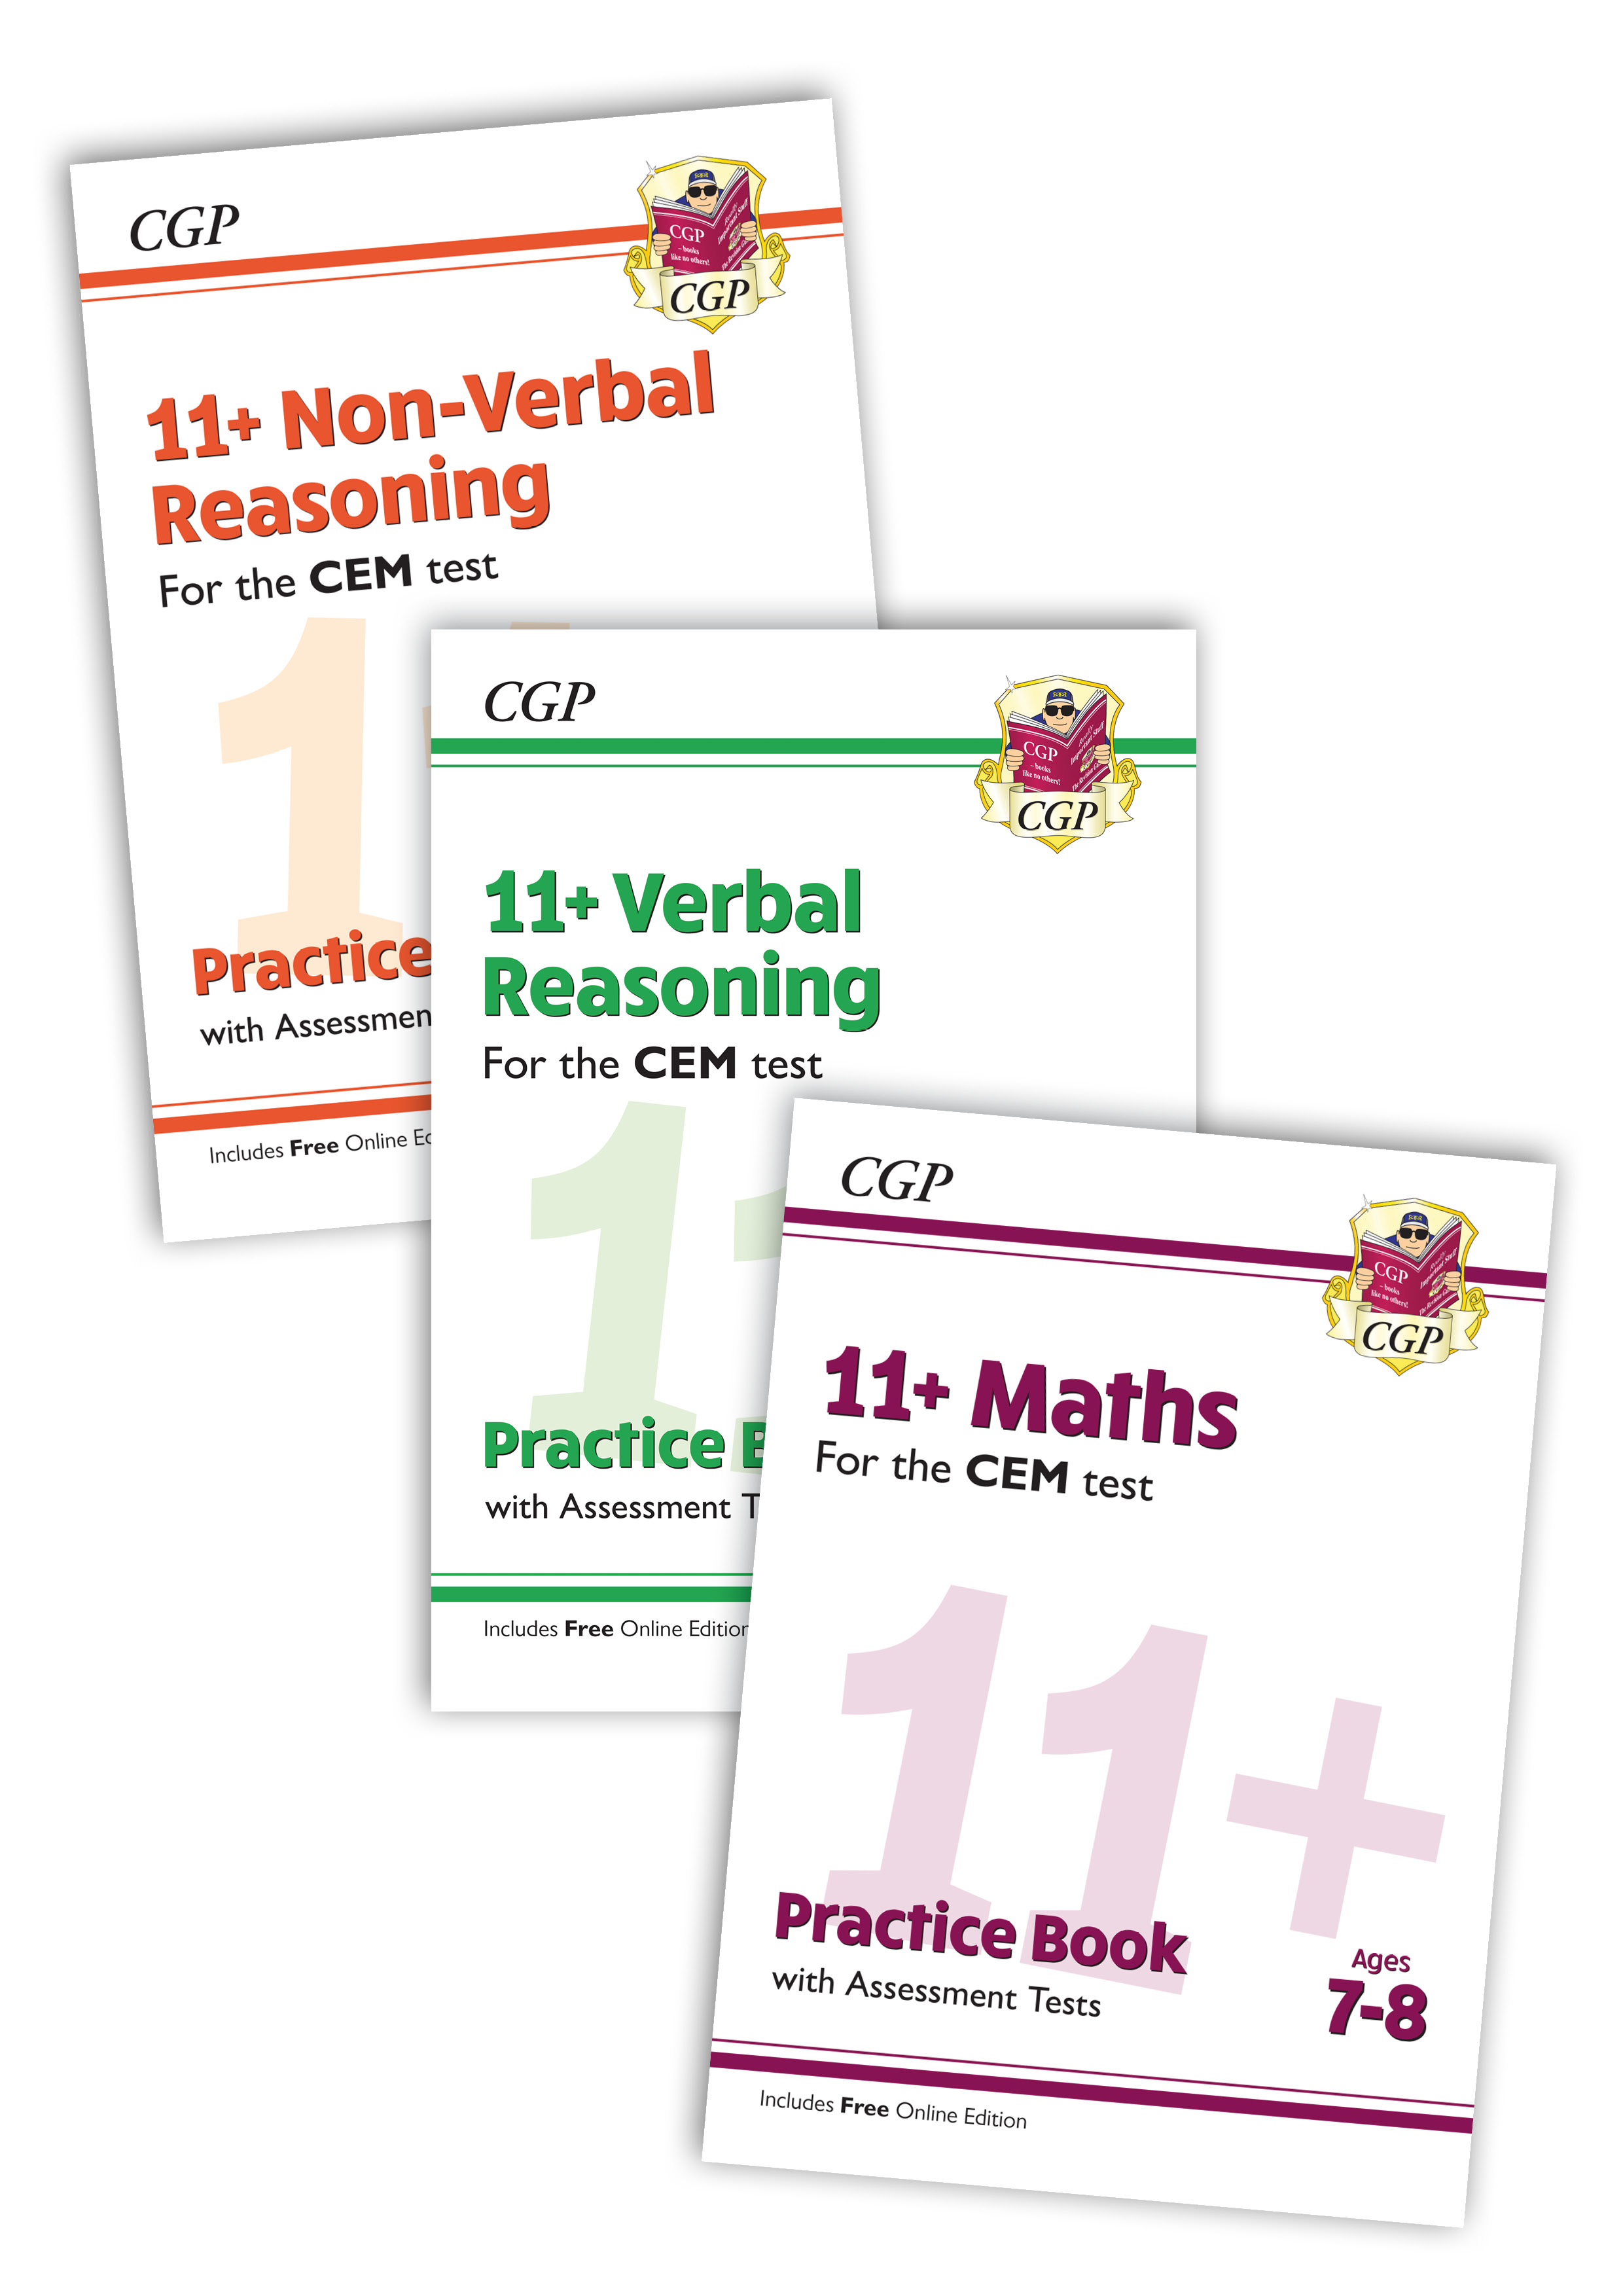 EL3BDE3 - New 11+ CEM Practice 3-book Bundle - for Ages 7-8